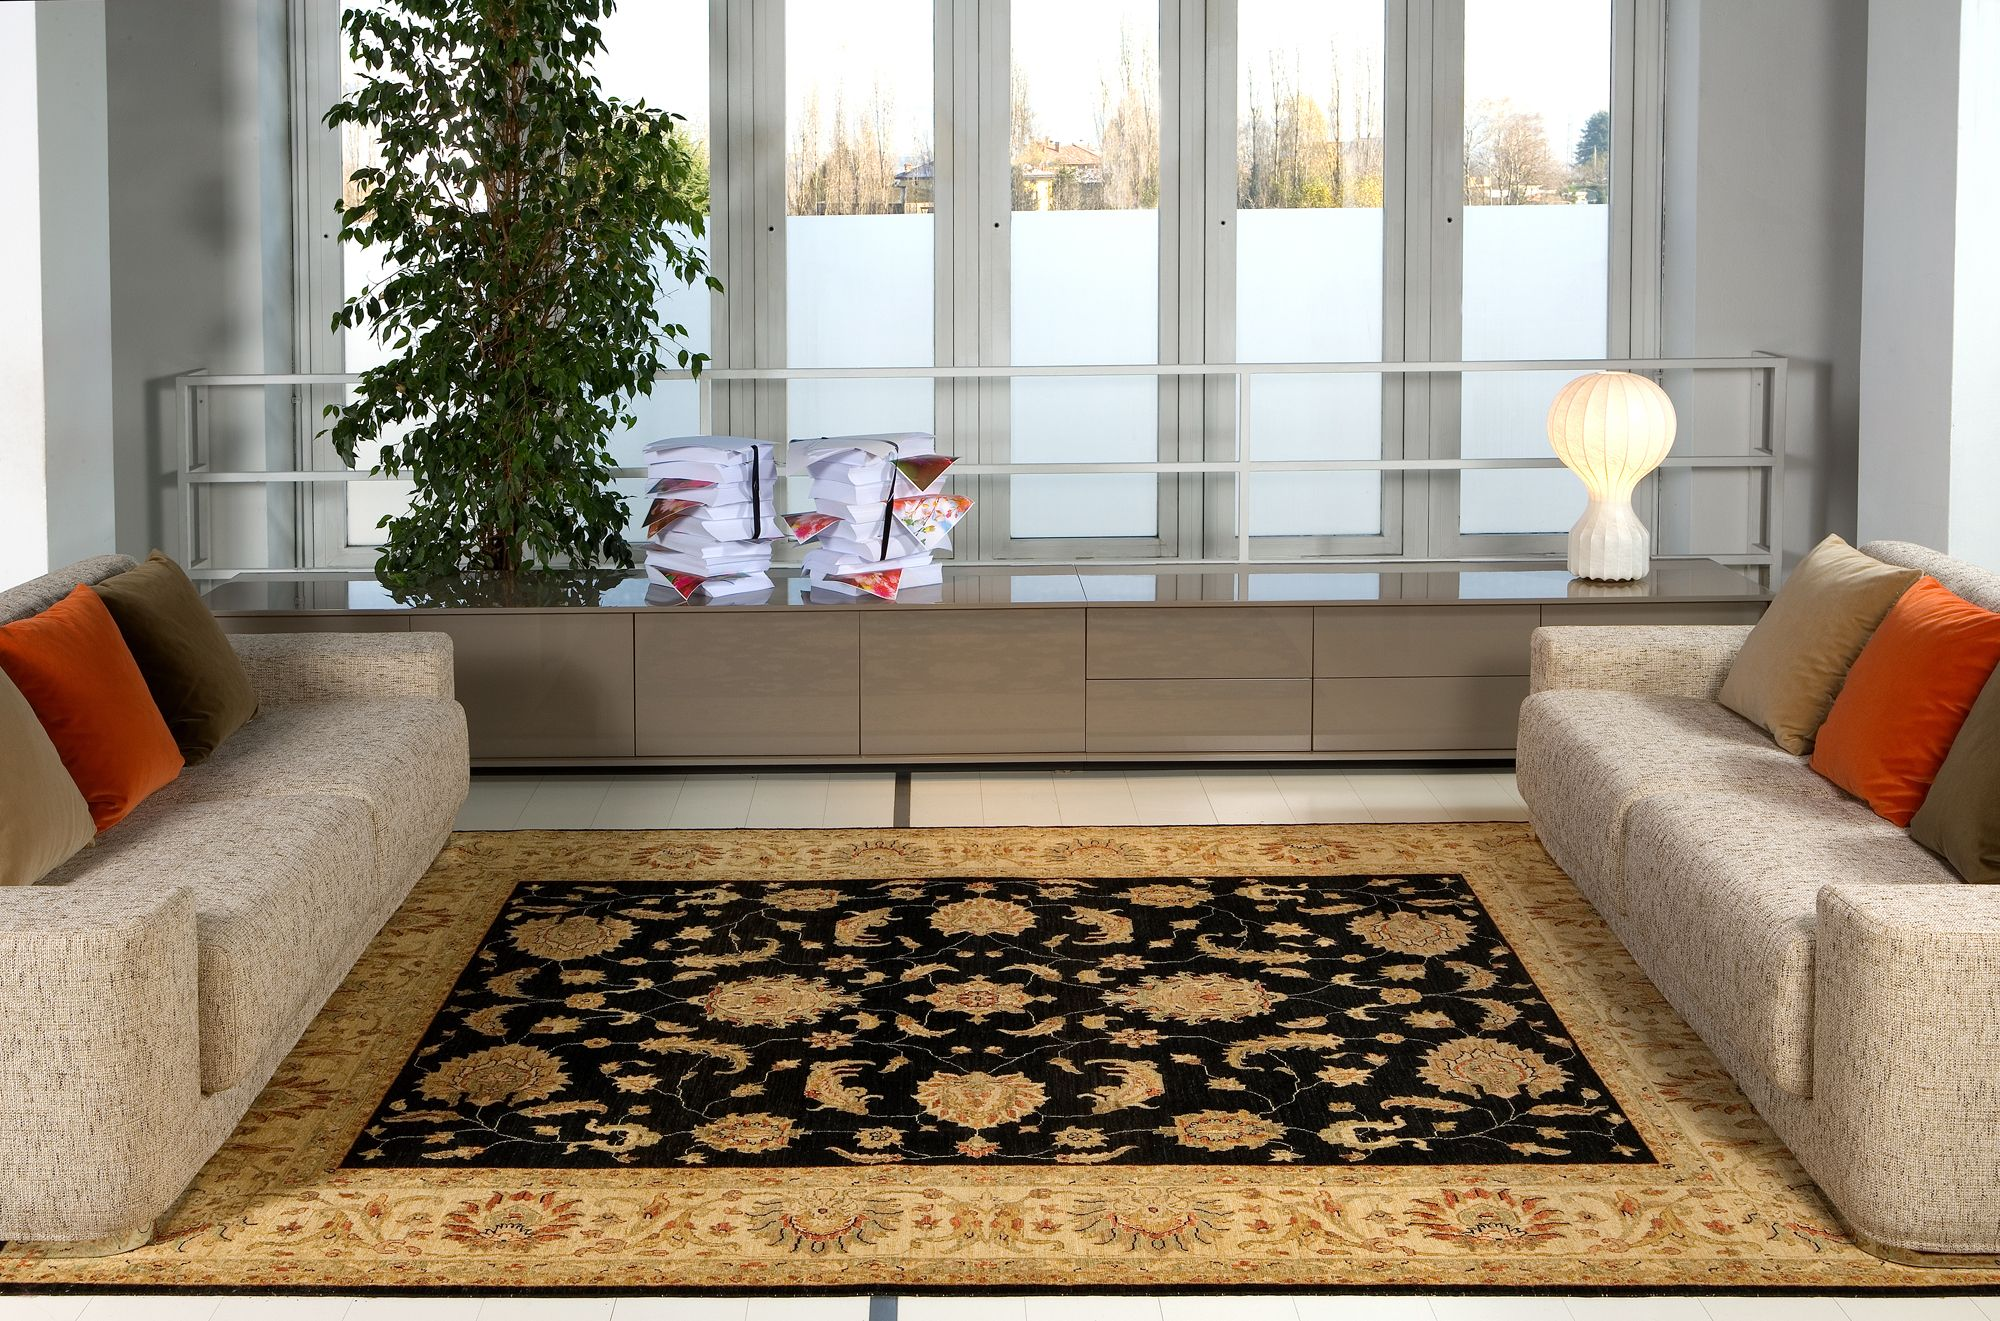 Carpets And Rugs Http Www Modernrugsideas Org